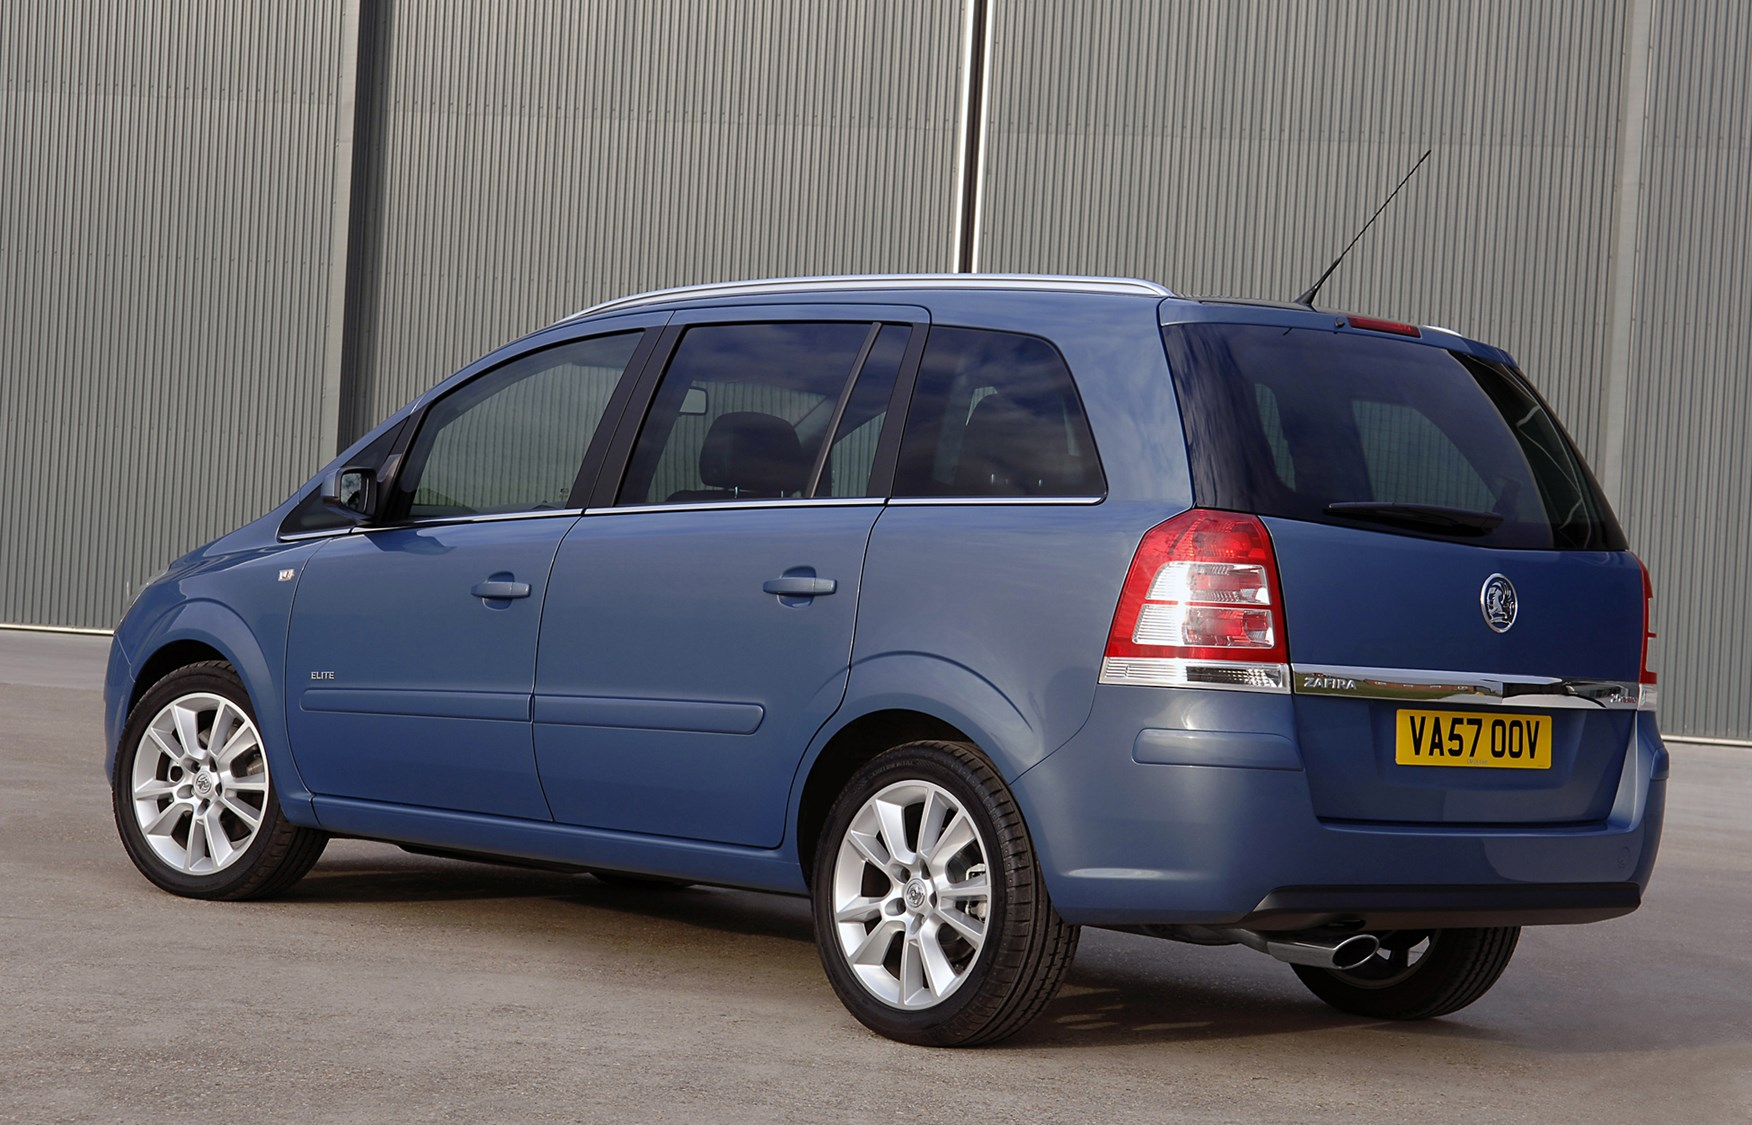 vauxhall zafira estate 2005 2014 features equipment and accessories parkers. Black Bedroom Furniture Sets. Home Design Ideas